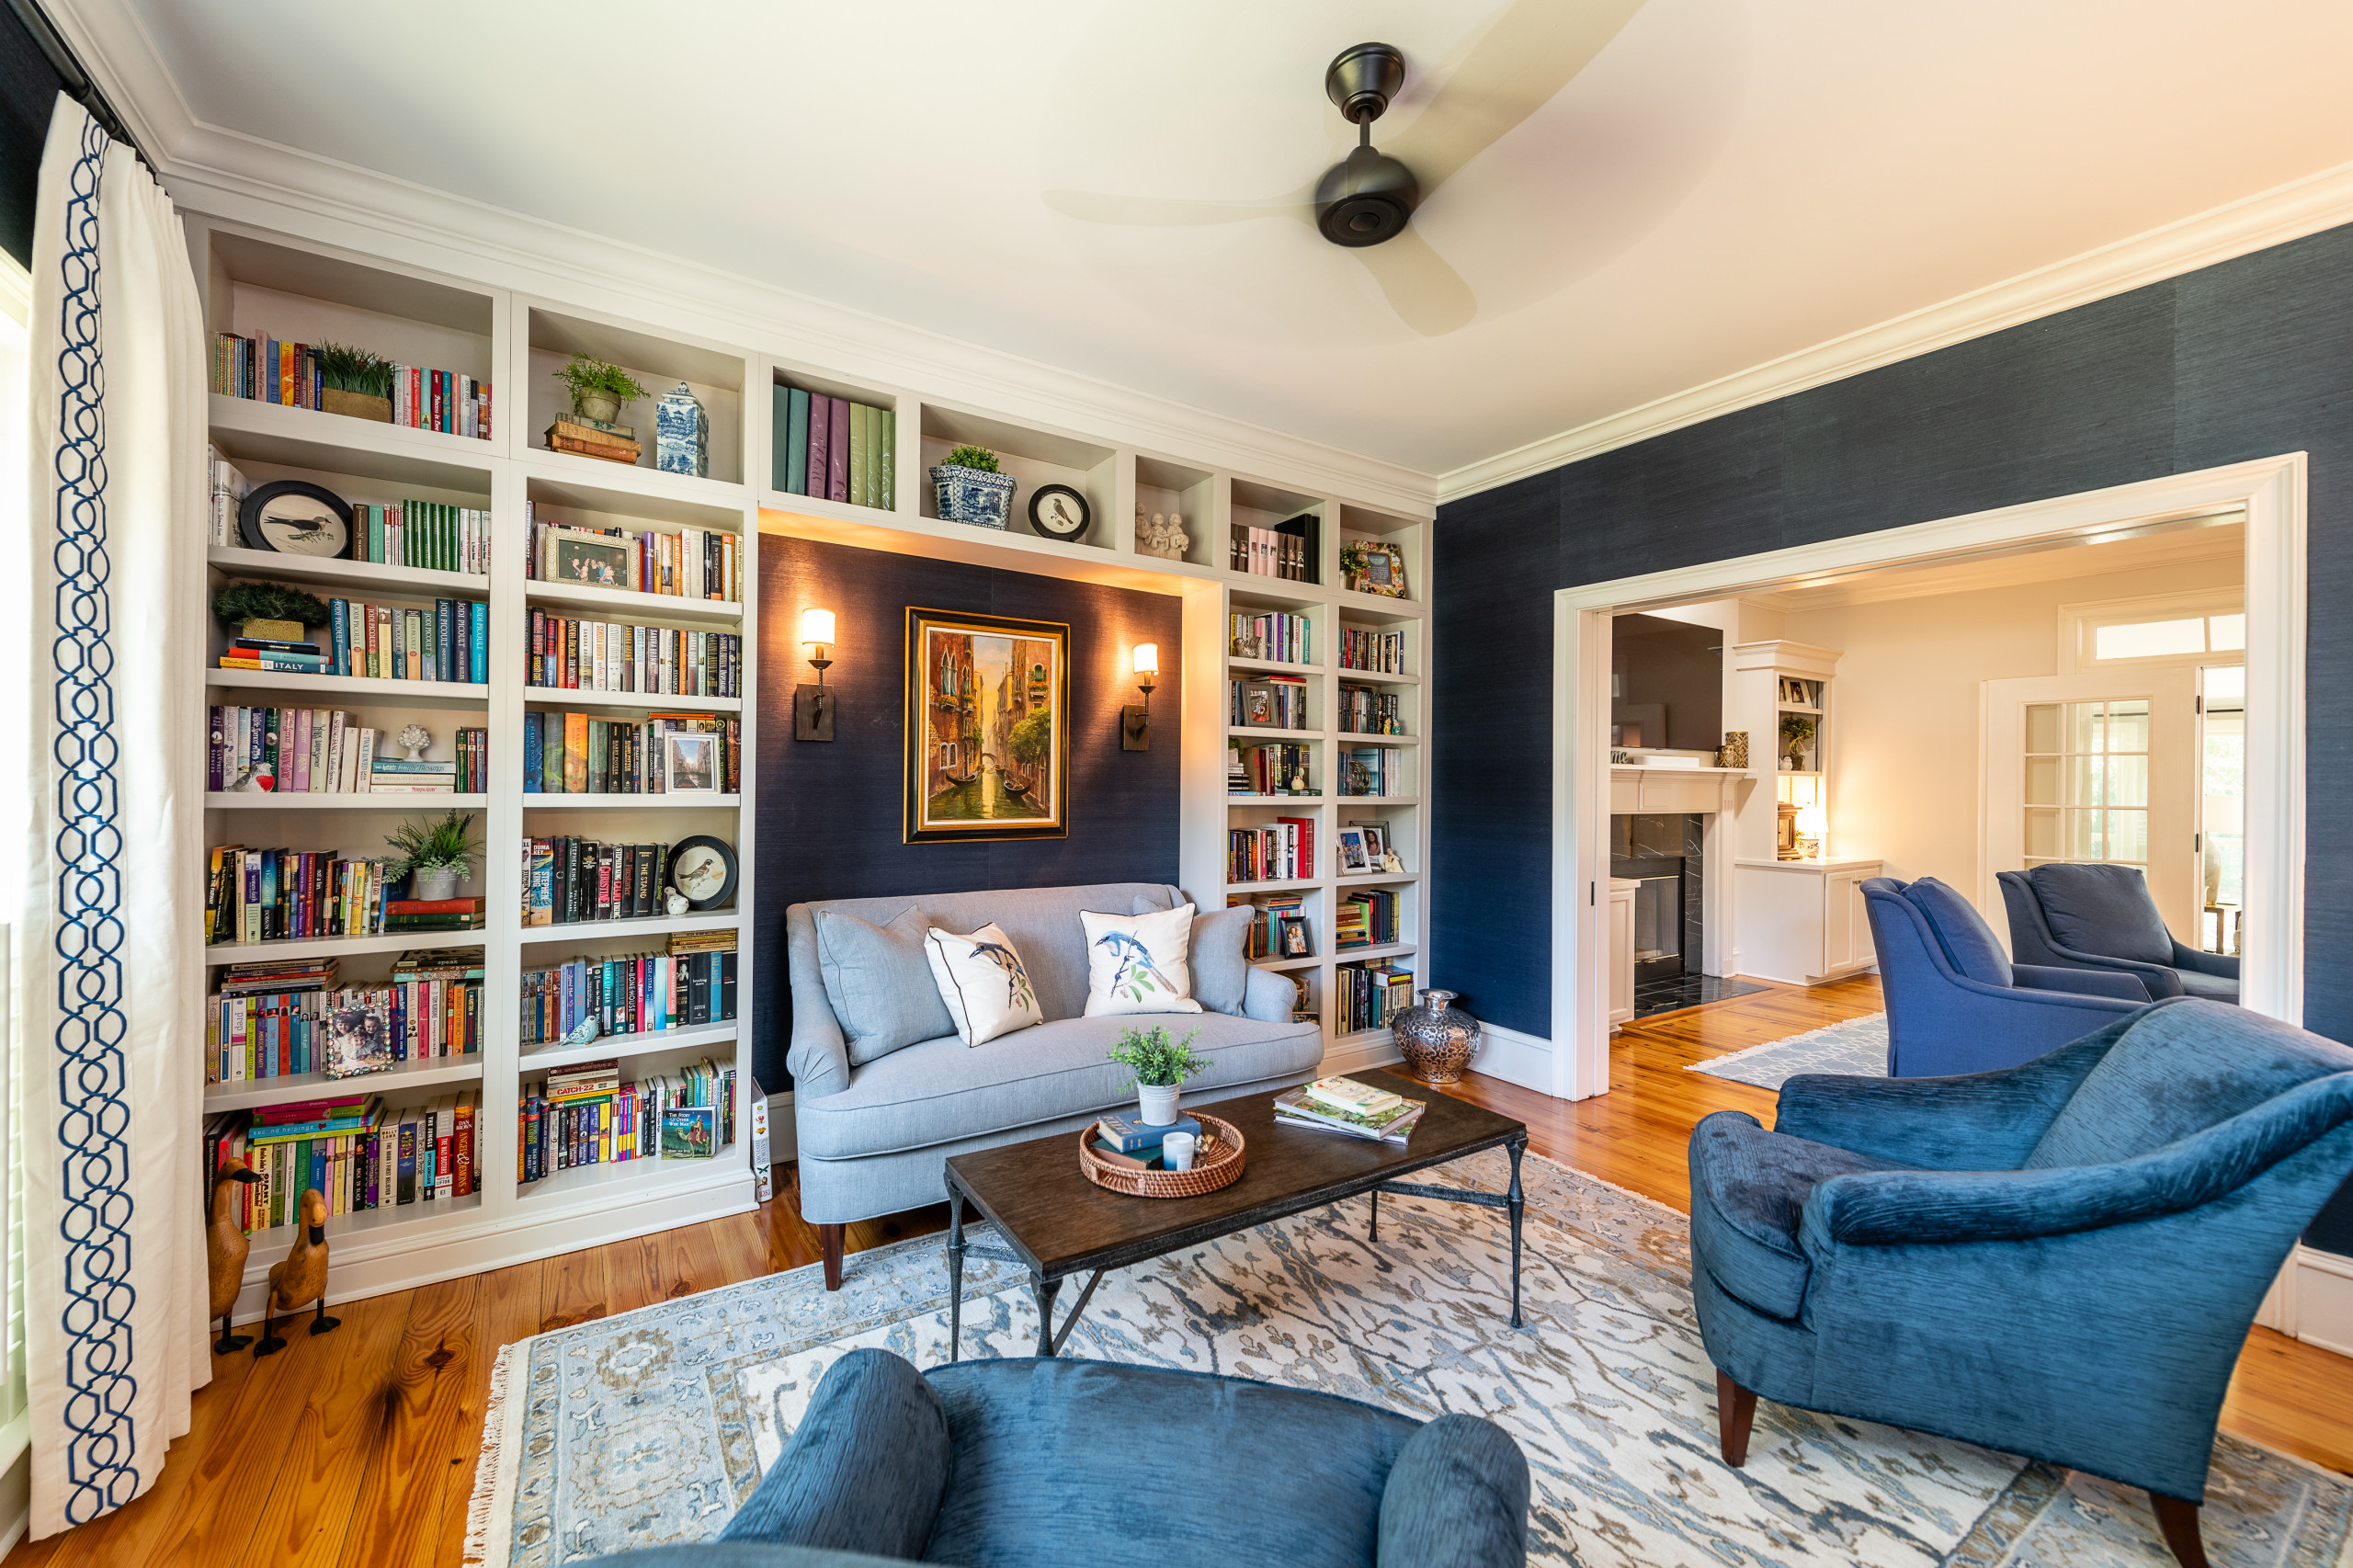 75 Beautiful Living Room Library Pictures Ideas February 2021 Houzz